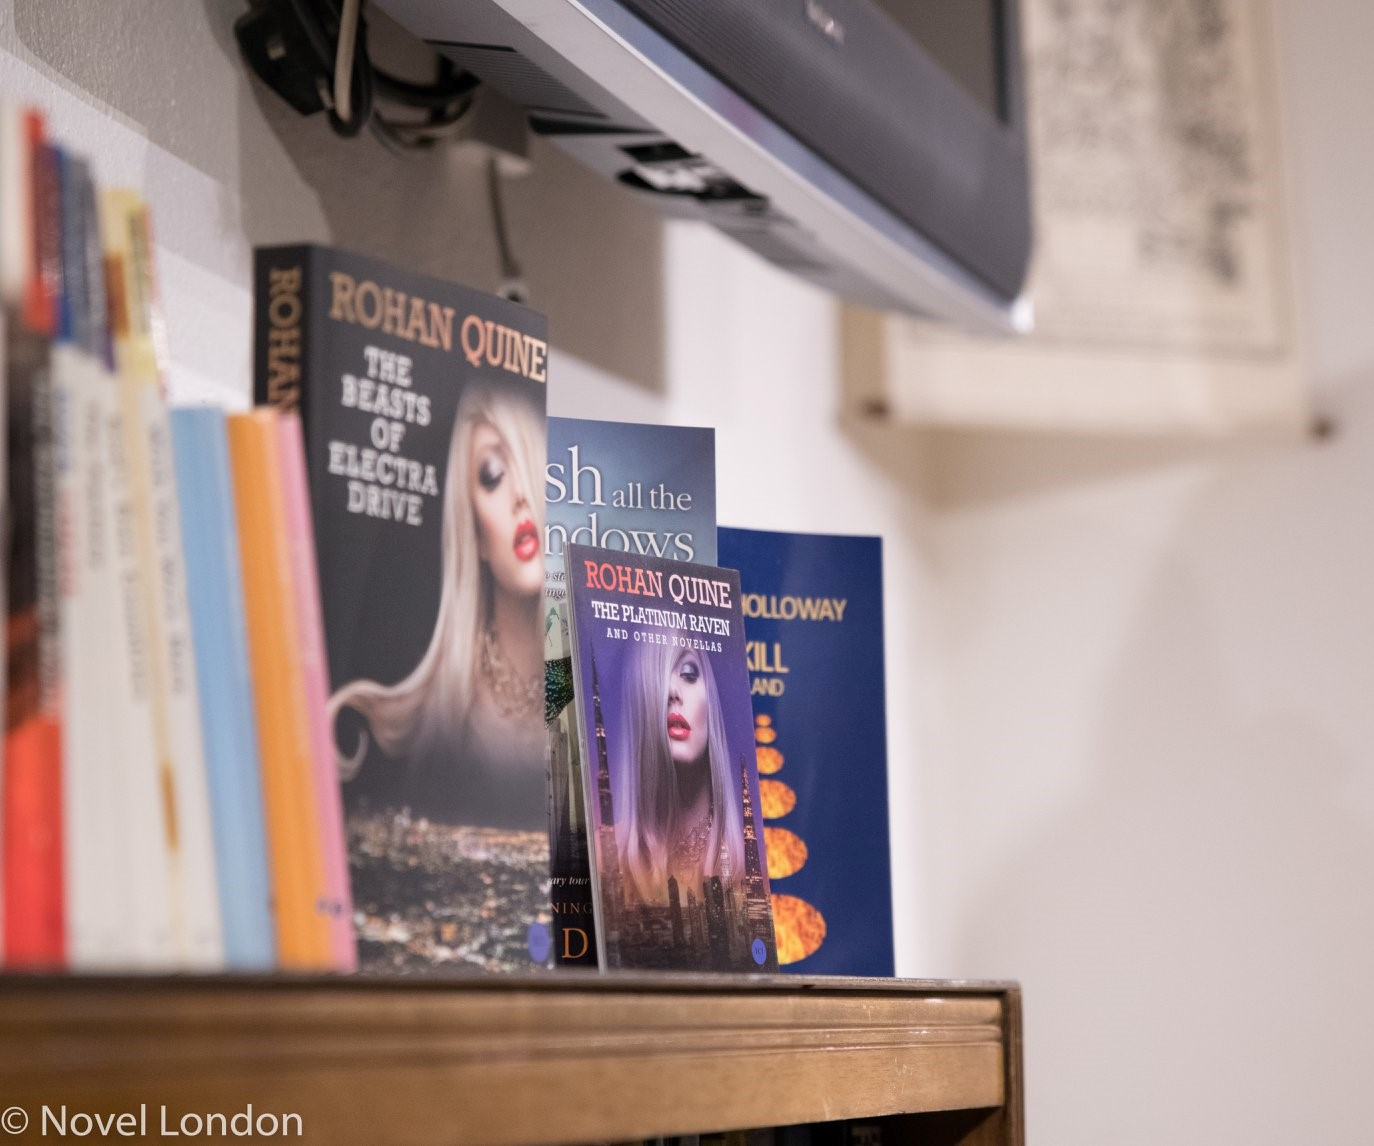 Launch of Rohan Quine's 'The Beasts of Electra Drive' & Dan Holloway's 'Kill Land' - 11 (photo by Novel London)